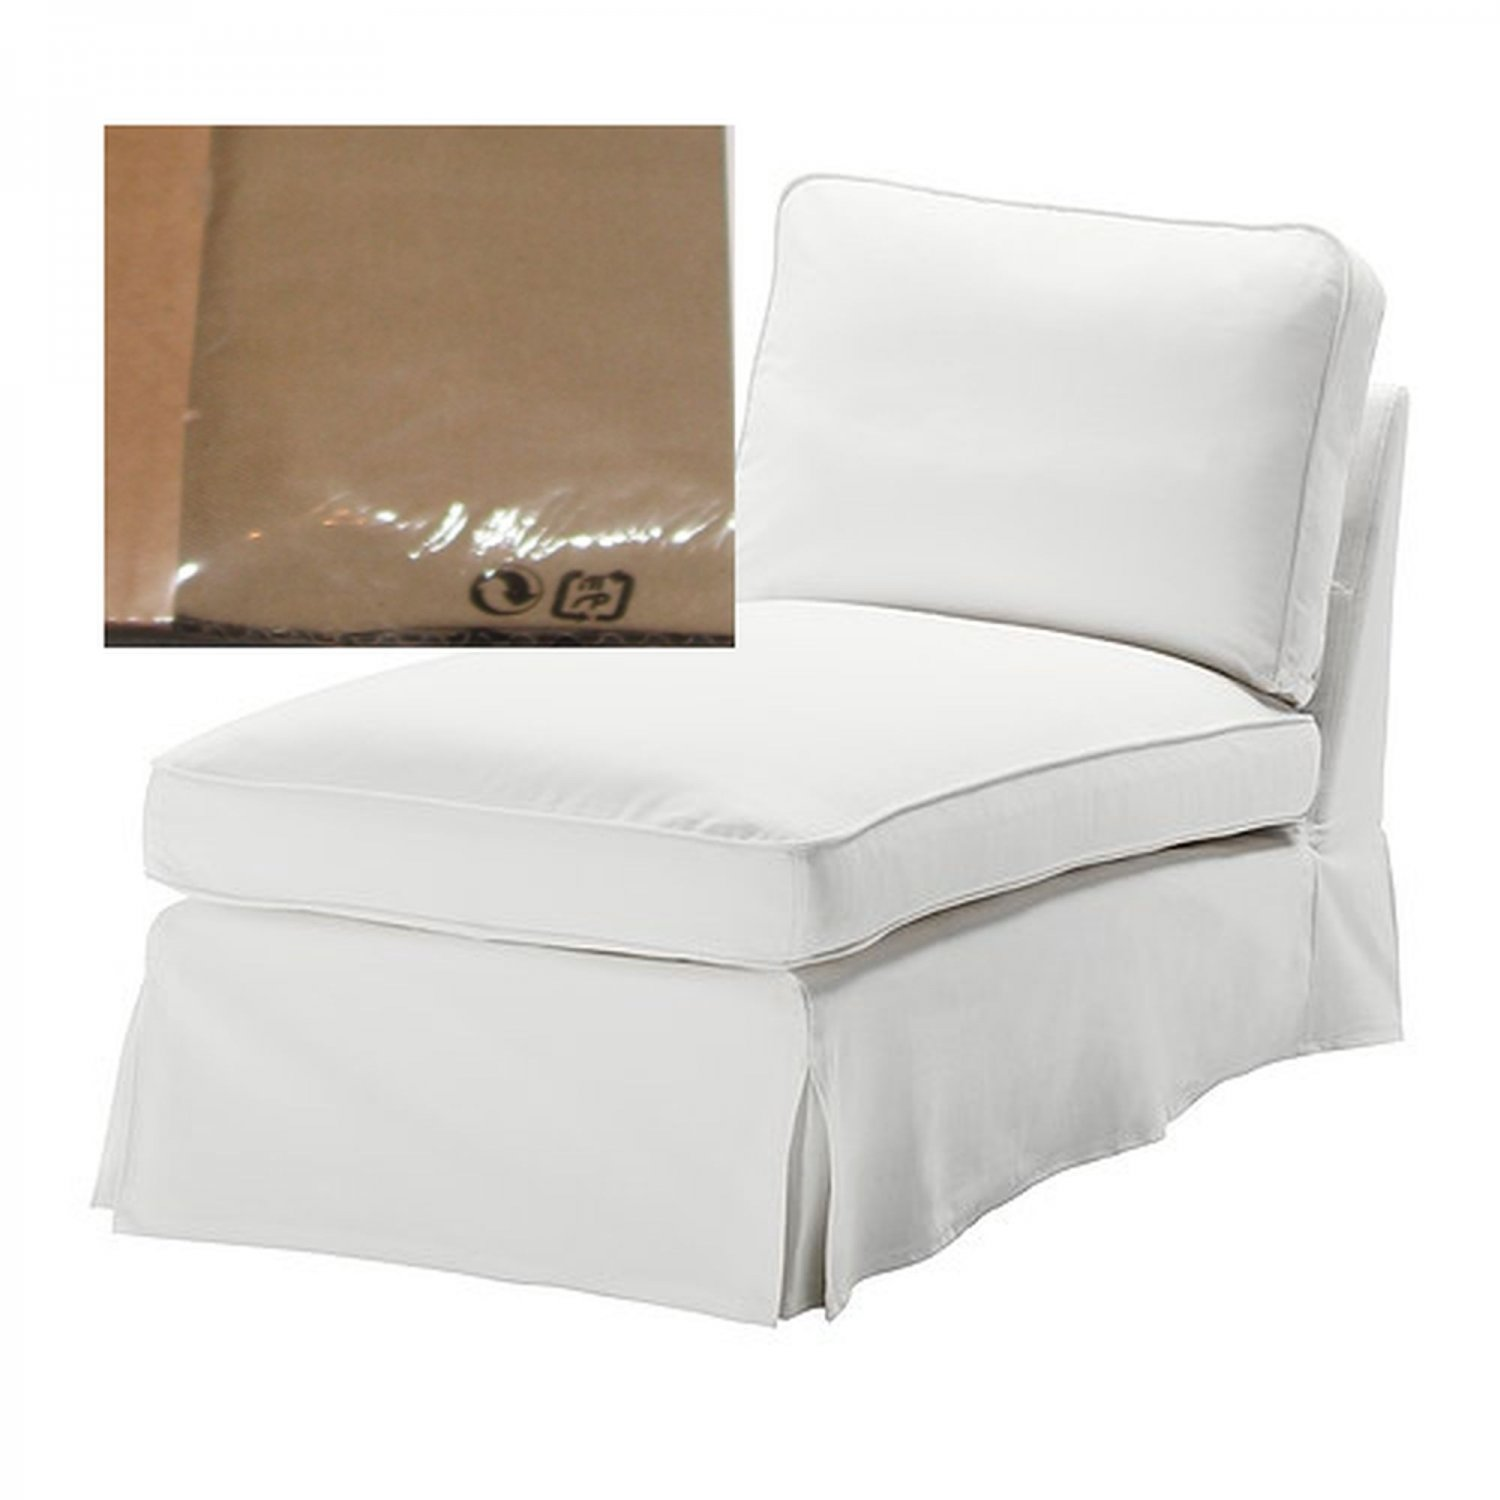 ikea ektorp free standing chaise cover slipcover idemo beige. Black Bedroom Furniture Sets. Home Design Ideas